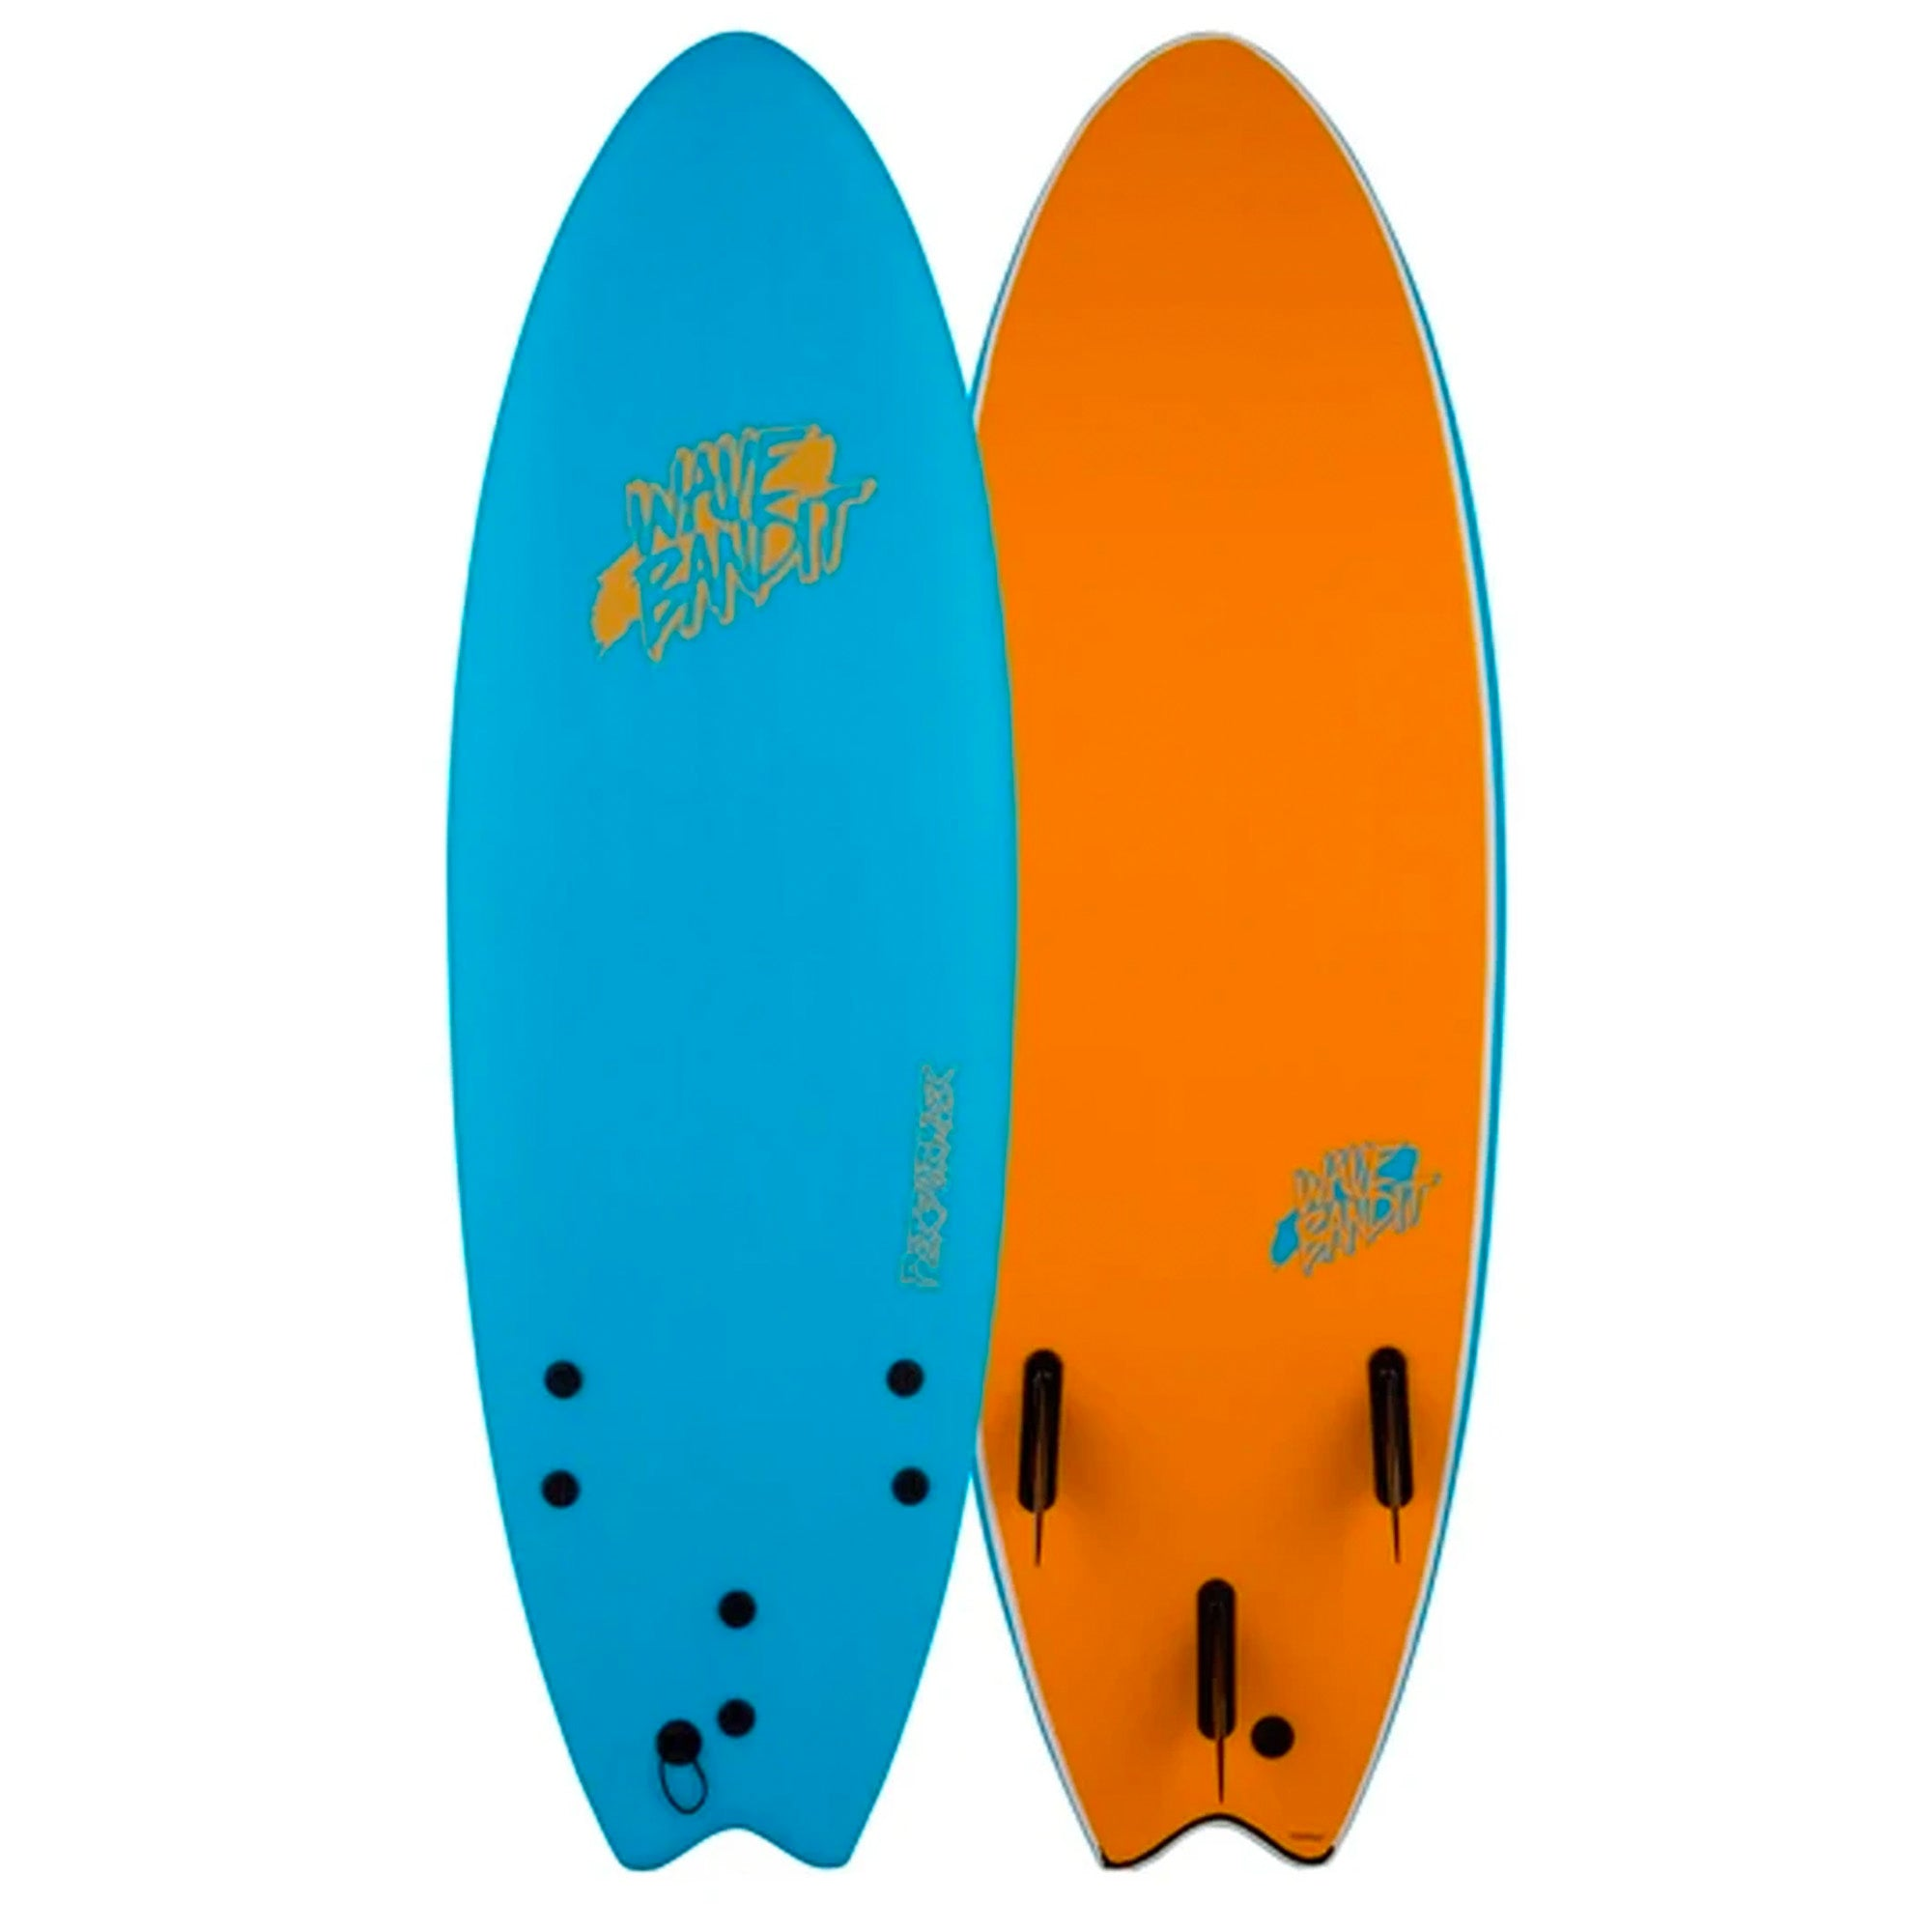 Catch Surf Wave Bandit Performer Thruster Soft Surfboard